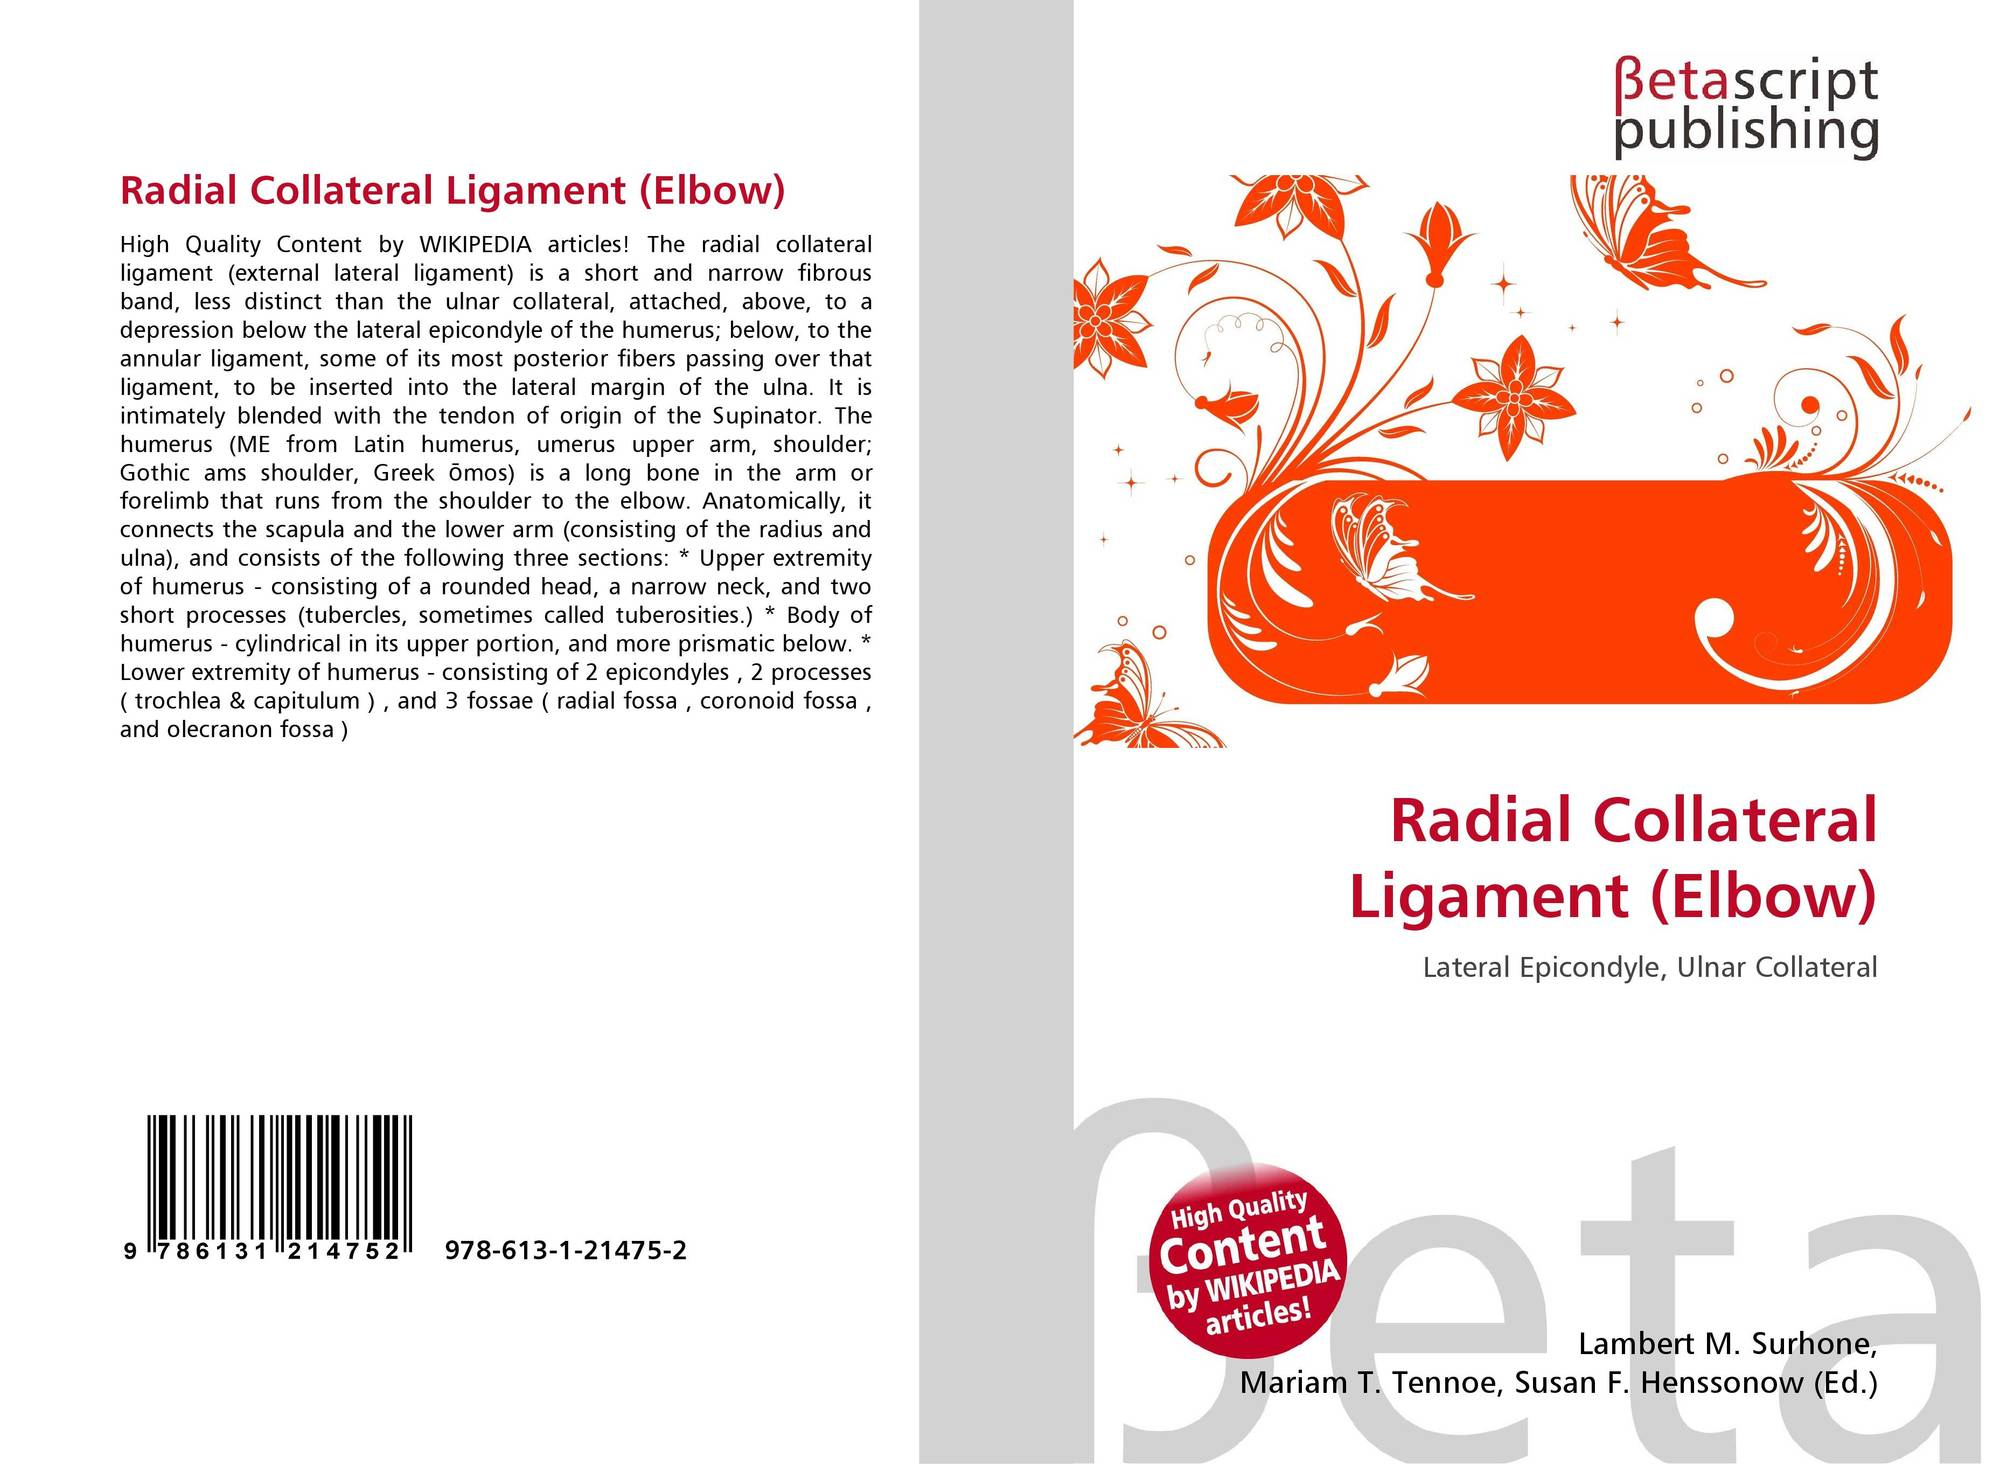 Radial Collateral Ligament Elbow 978 613 1 21475 2 6131214751